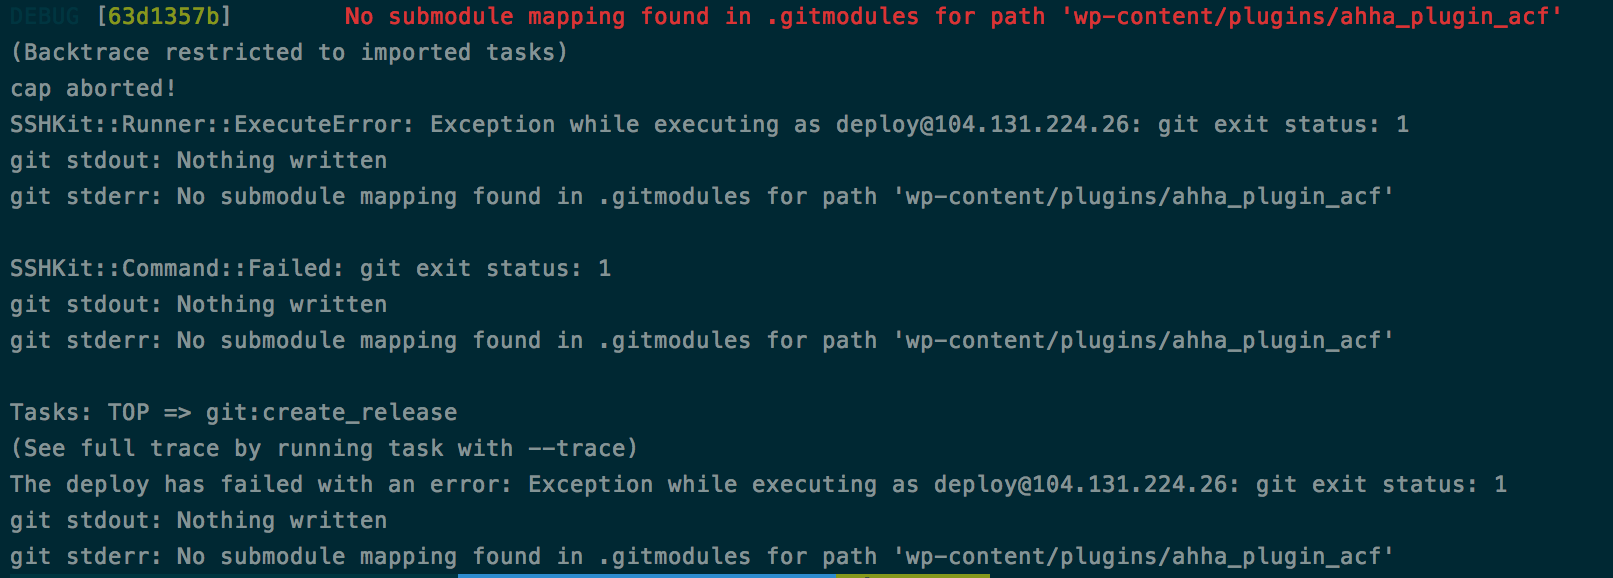 No Submodule Mapping Found